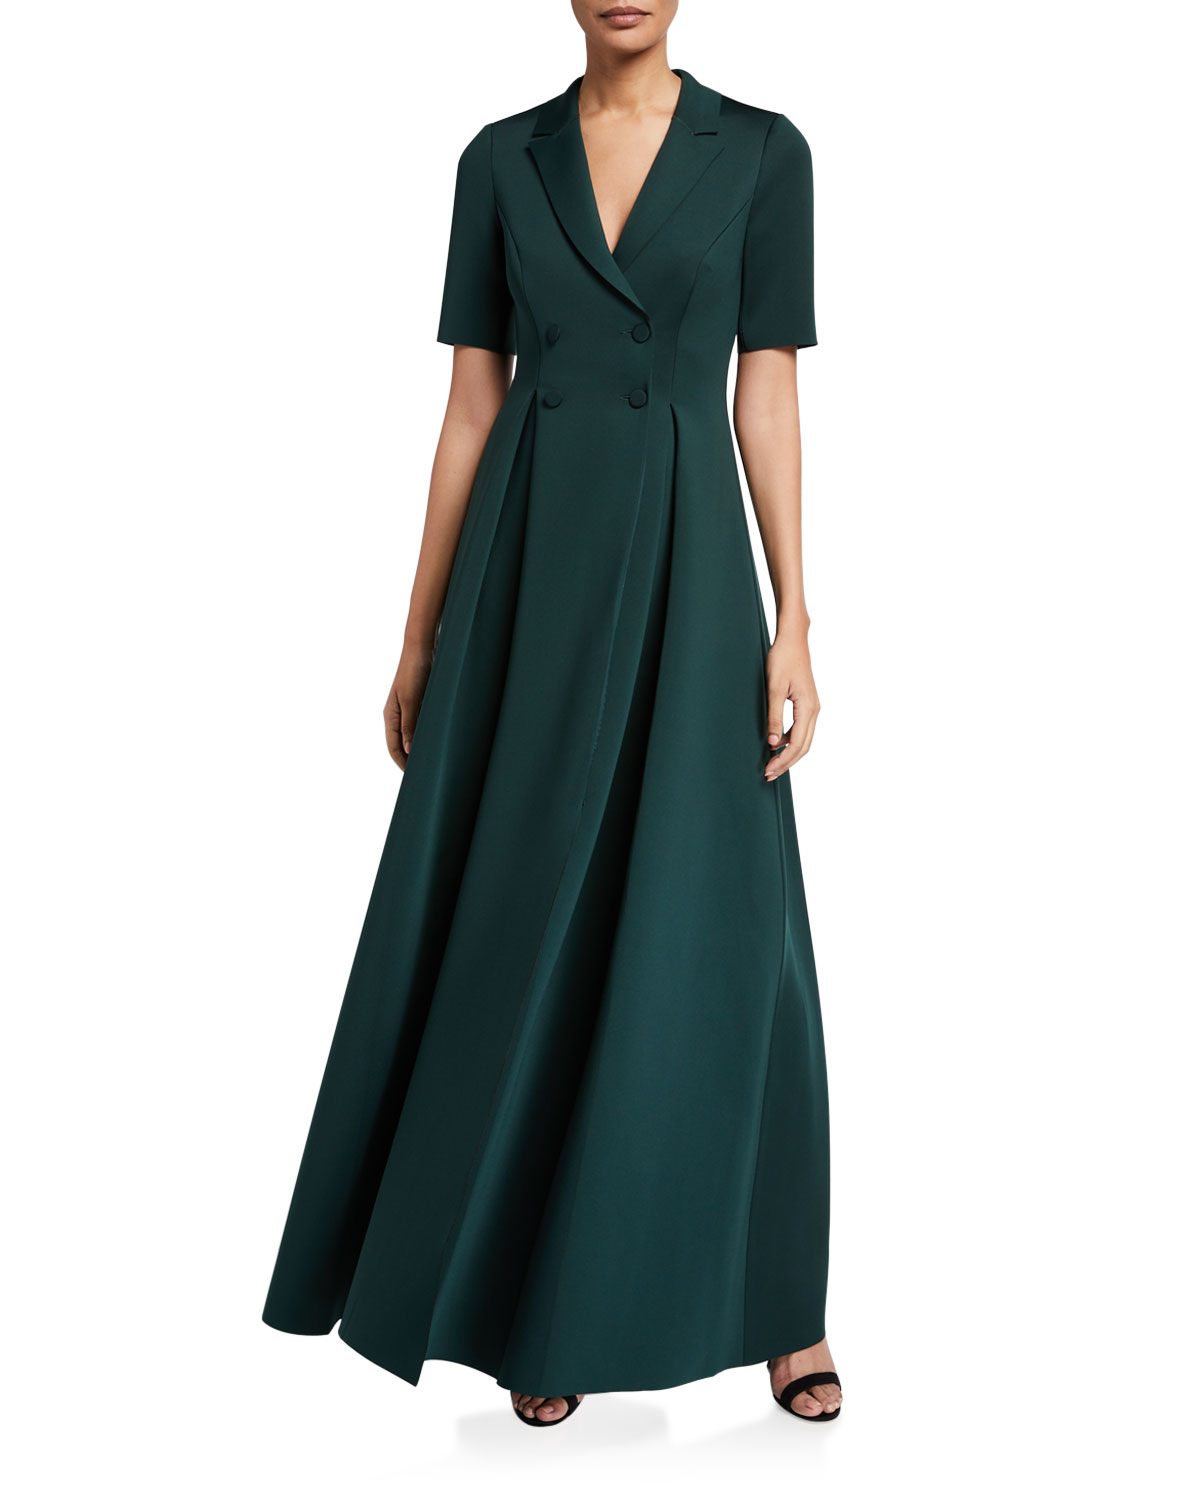 Badgley Mischka Coats ELBOW-SLEEVE LONG SCUBA COAT DRESS